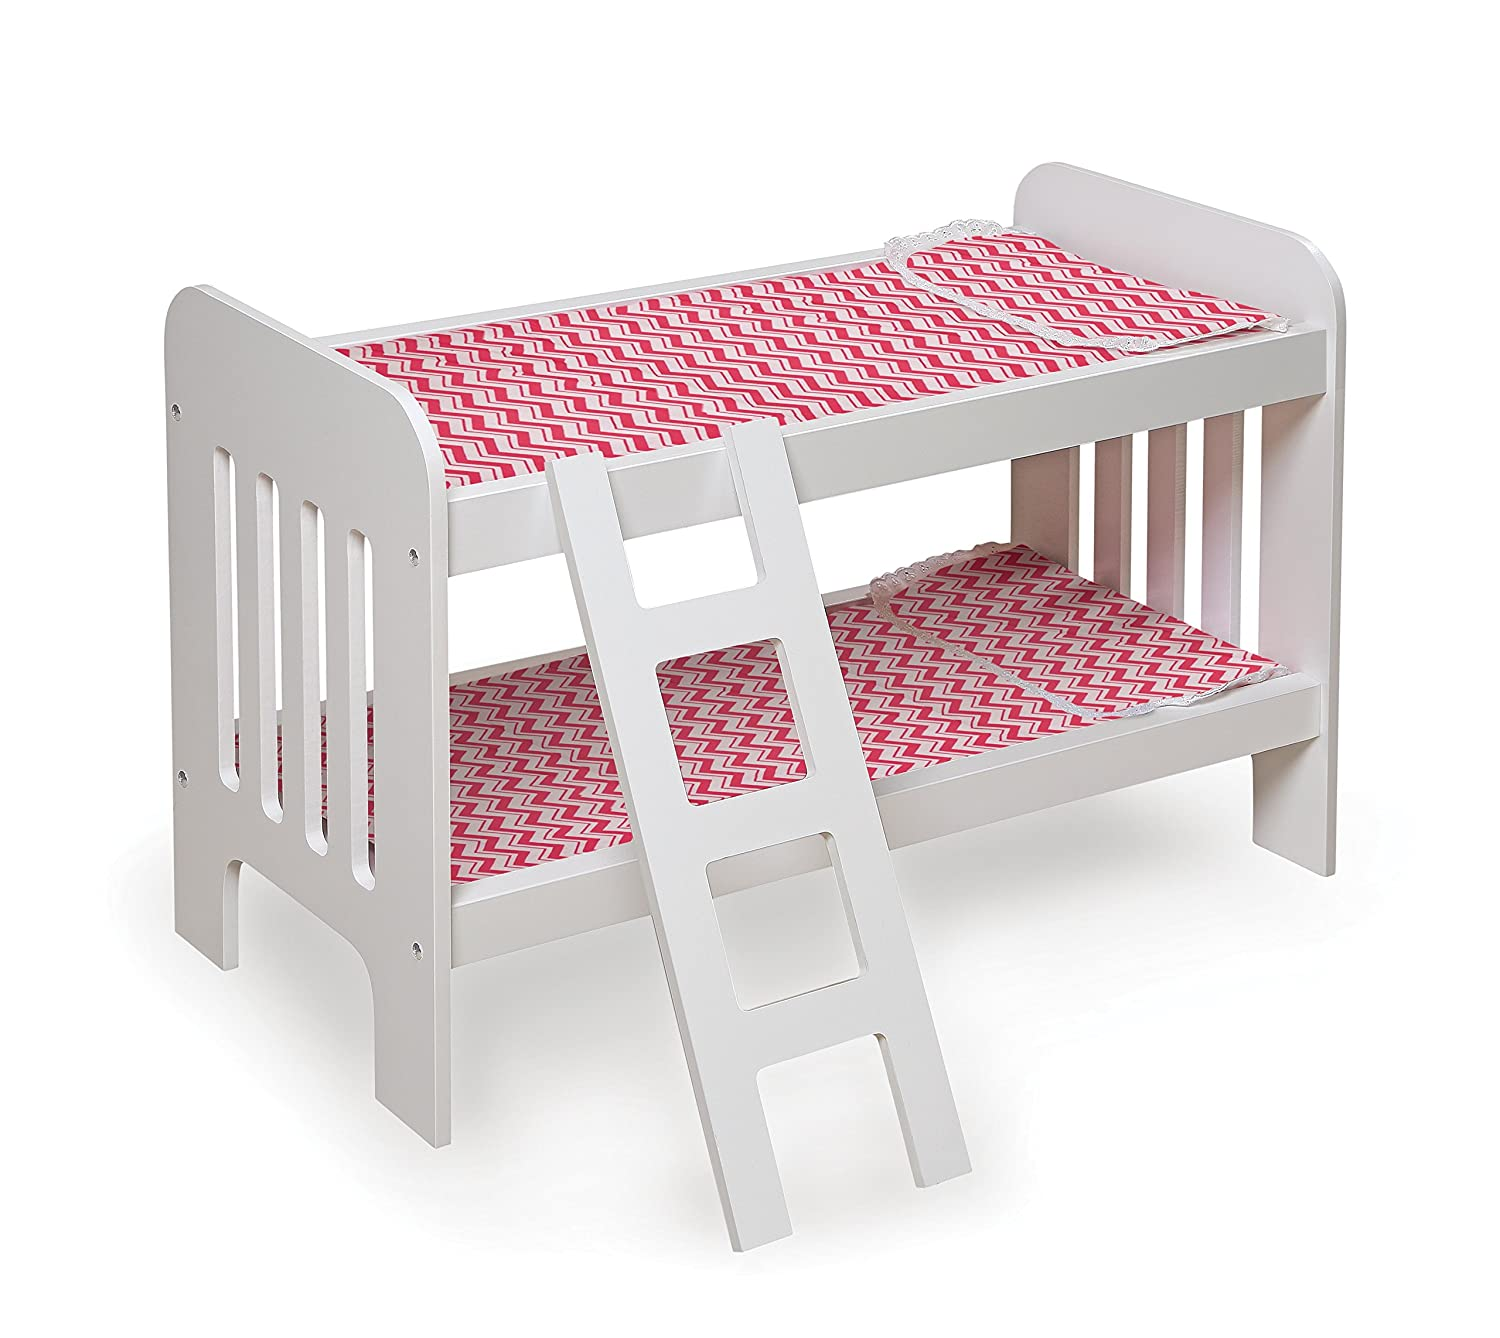 Amazon.com: Badger Basket Doll Bunk Bed With Ladder (fits American Girl  Dolls), Chevron/White/Pink: Toys U0026 Games